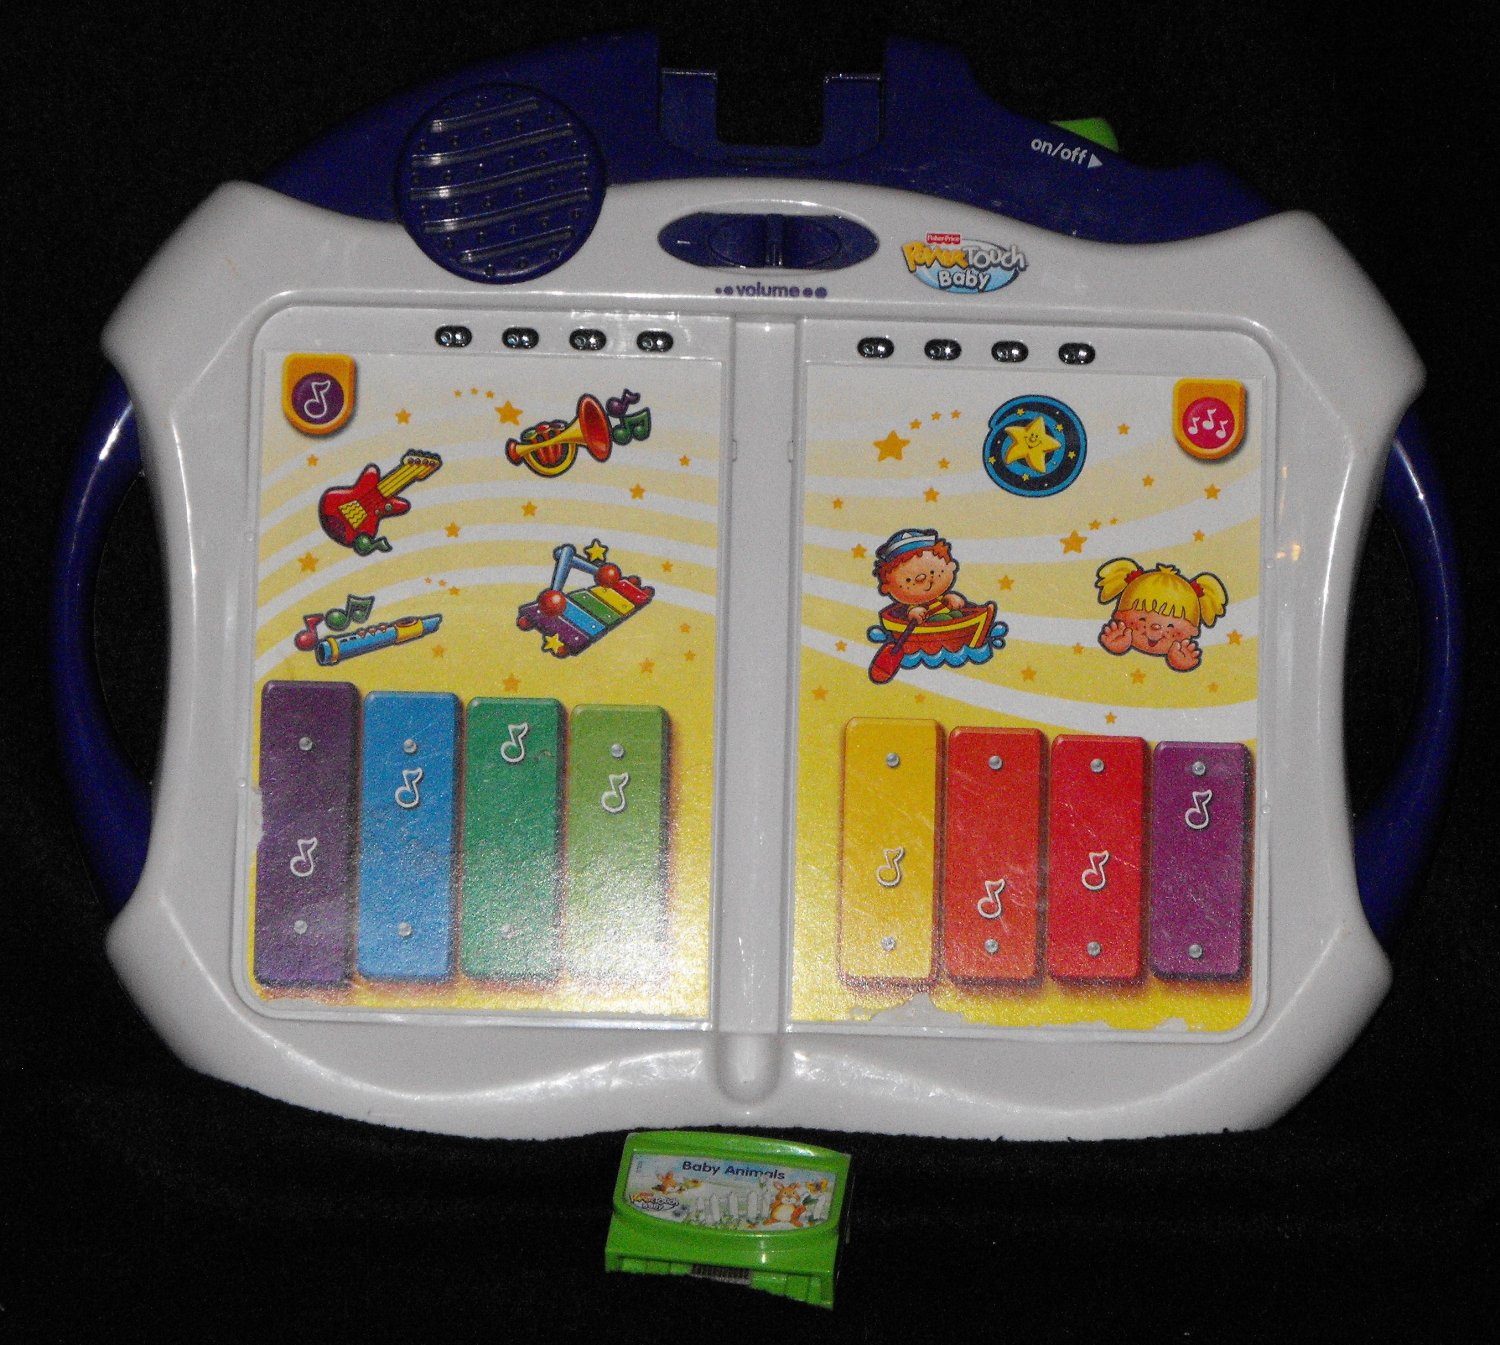 *SOLD~Awaiting Feedback~Fisher Price Power Touch Baby Reading System